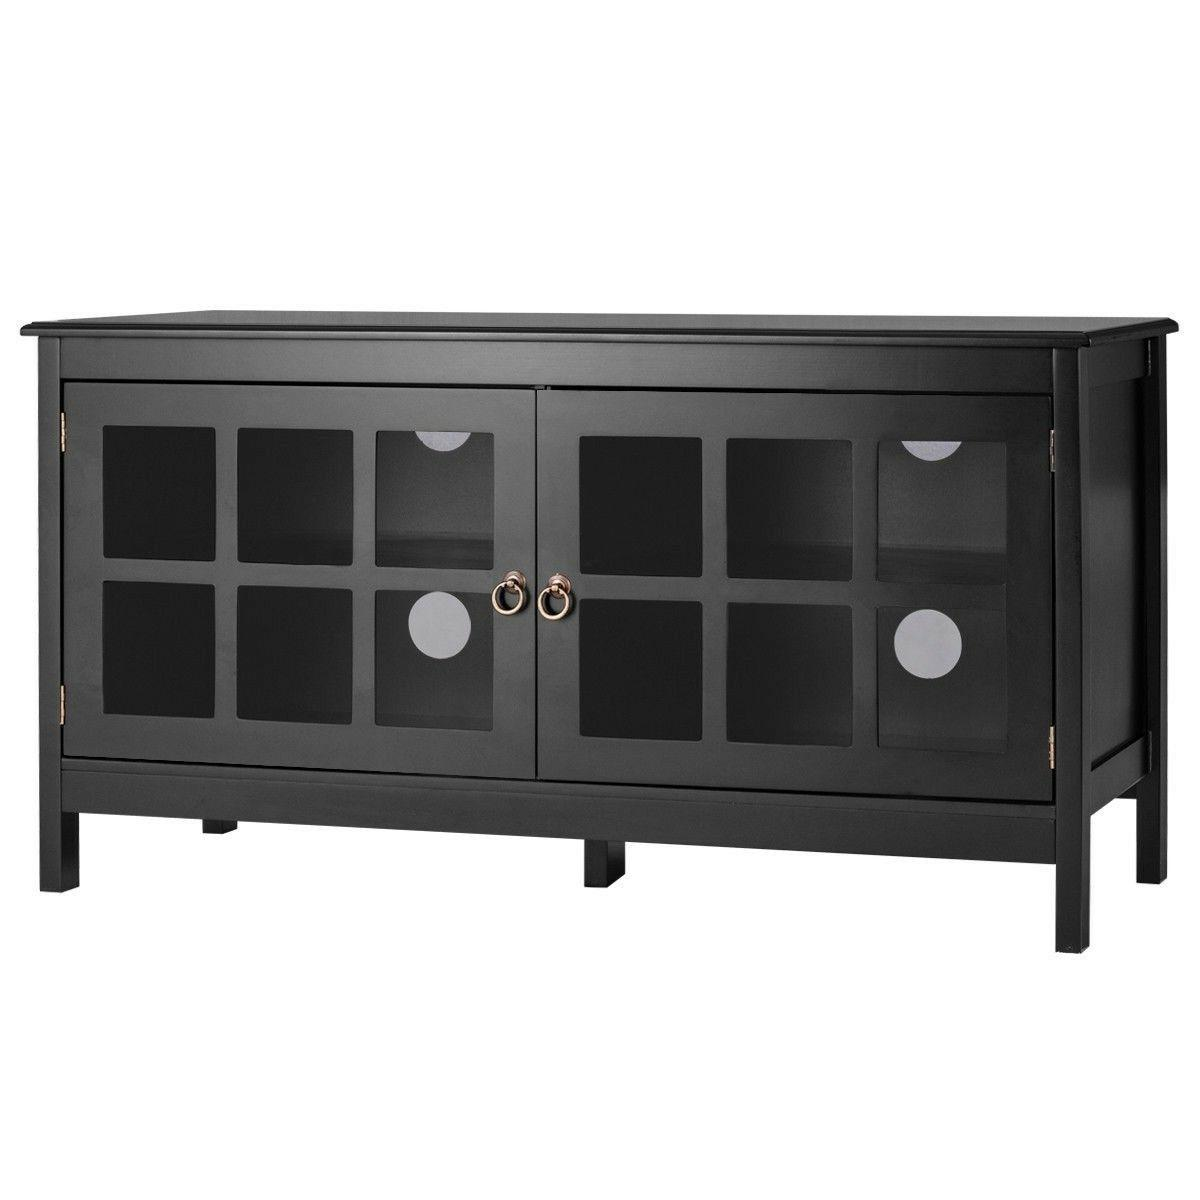 "Black 50"" TV Wood Storage Media"